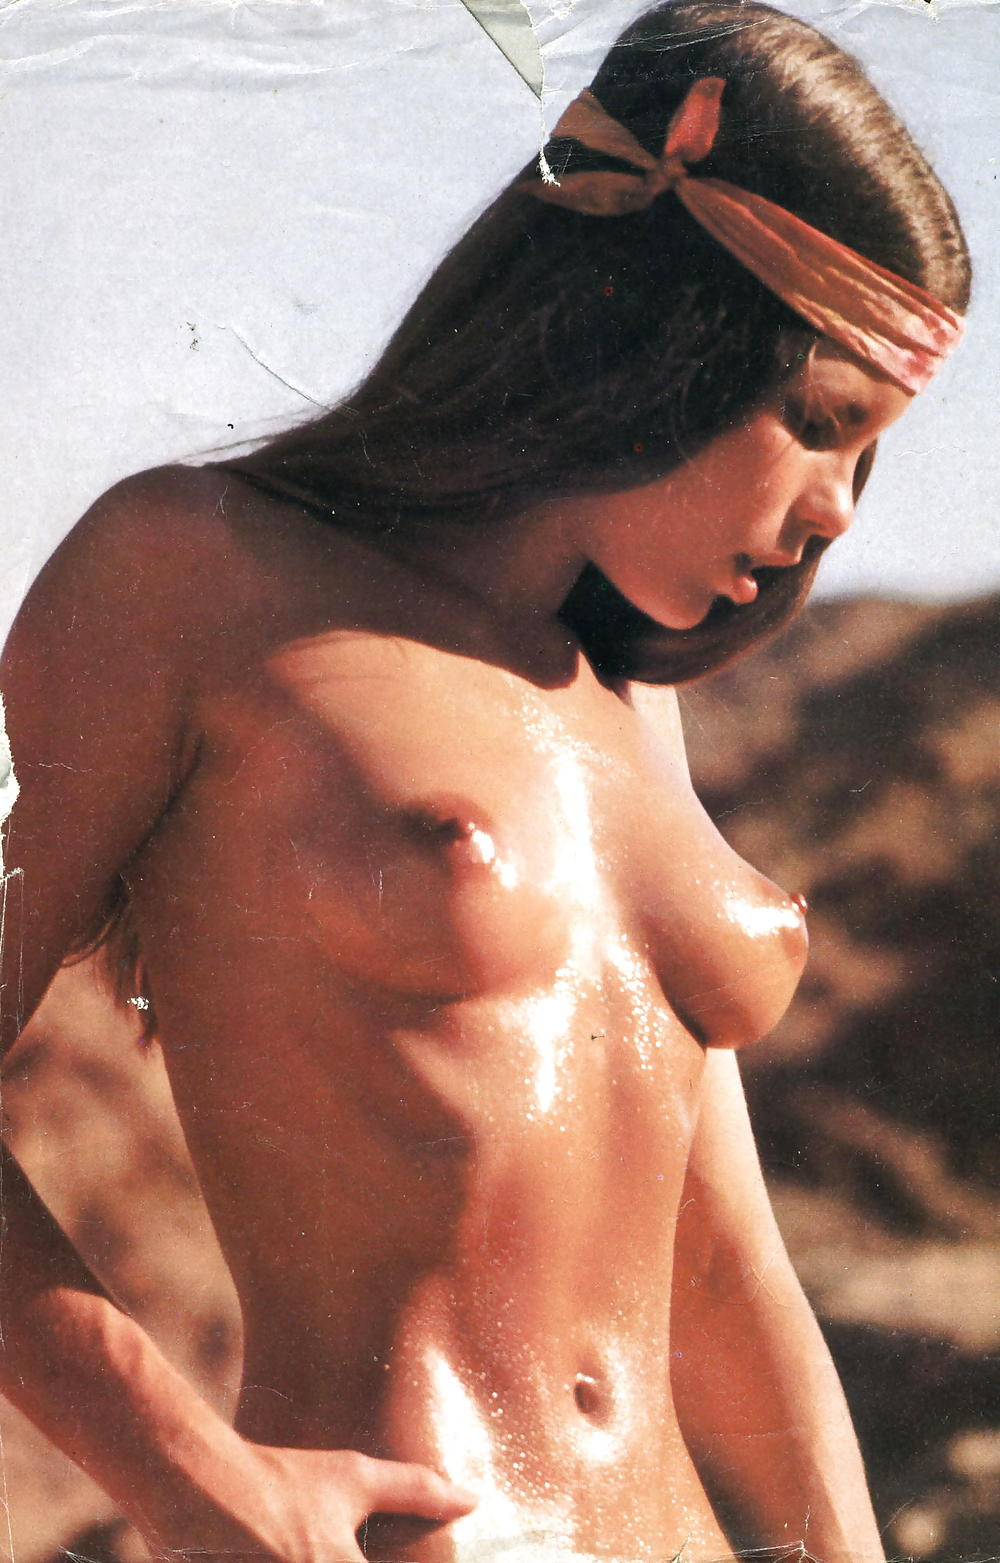 There's Index nudist picture valuable piece